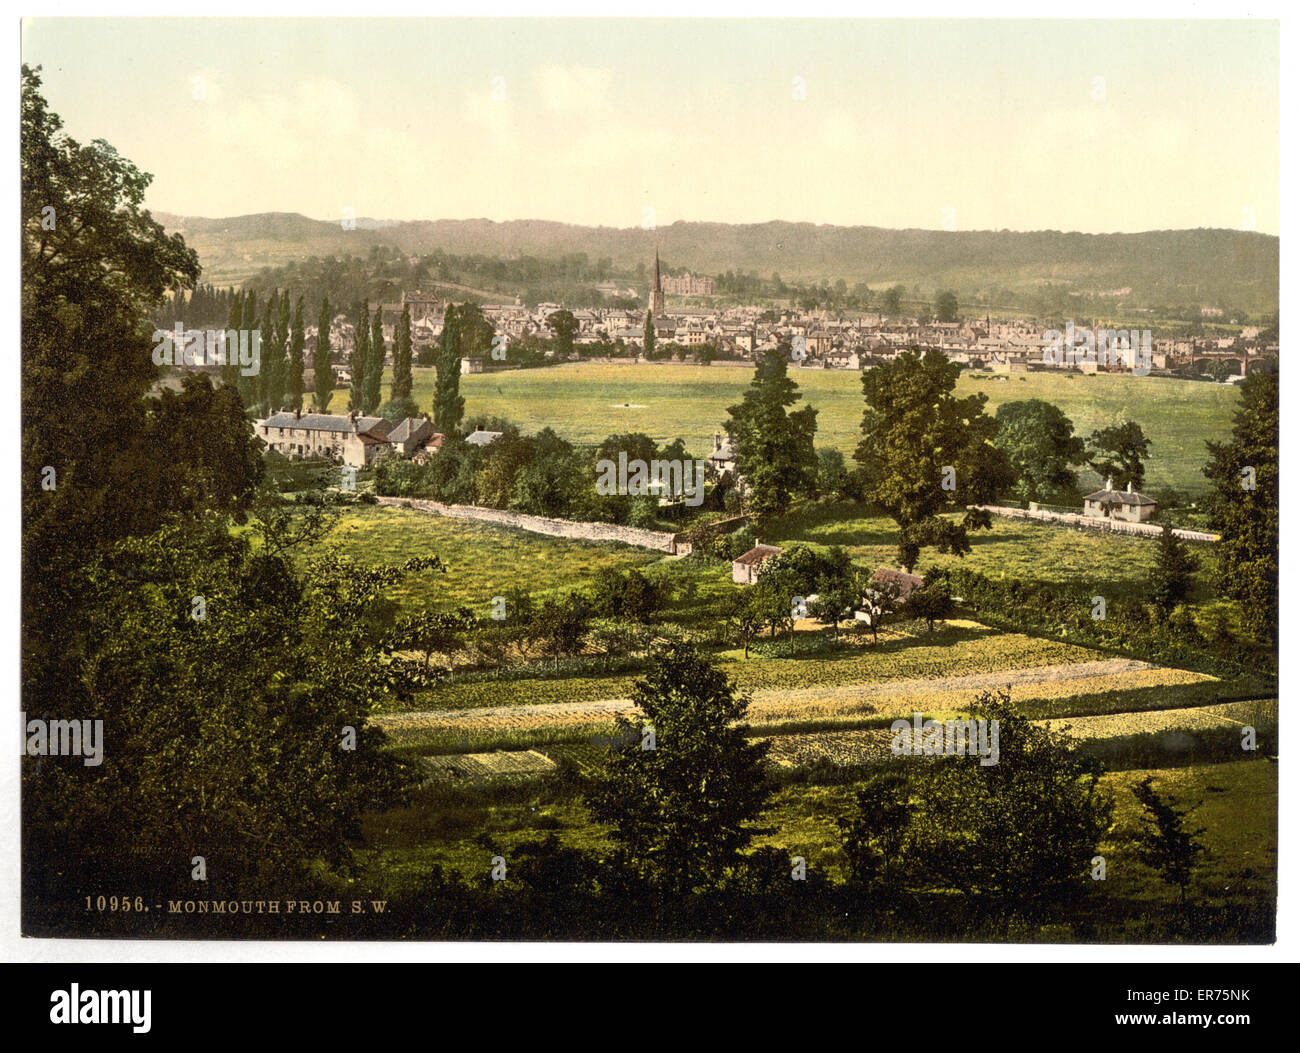 From S. W., Monmouth, England. Date between ca. 1890 and ca. 1900. - Stock Image